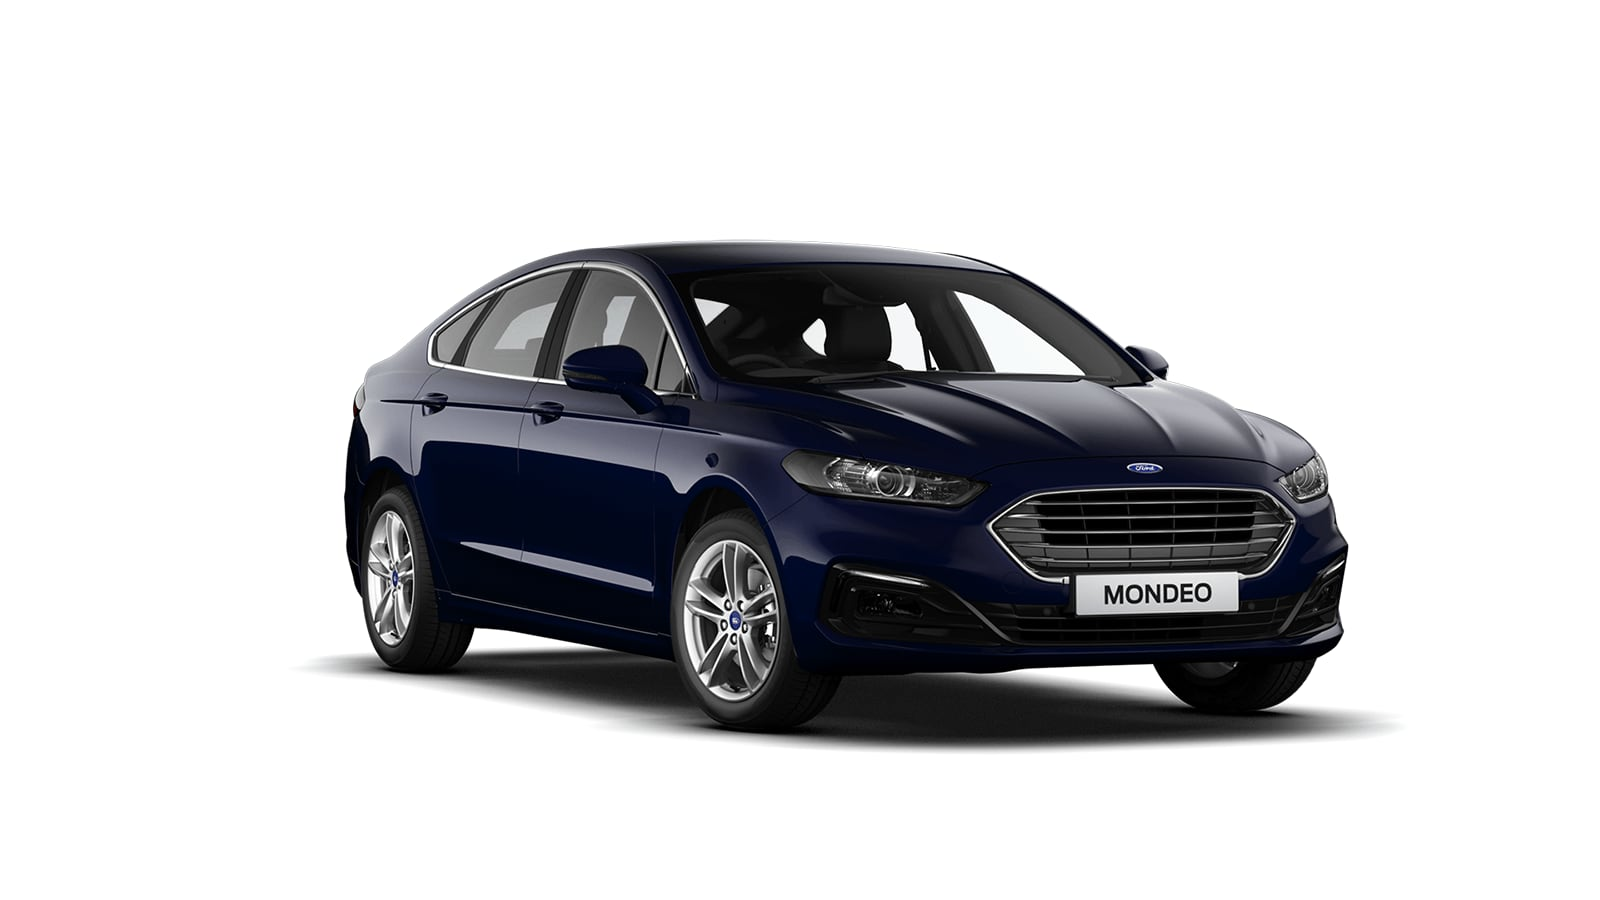 Ford Mondeo Zetec Edition 1.5L EcoBoost 165PS at Browne & Day